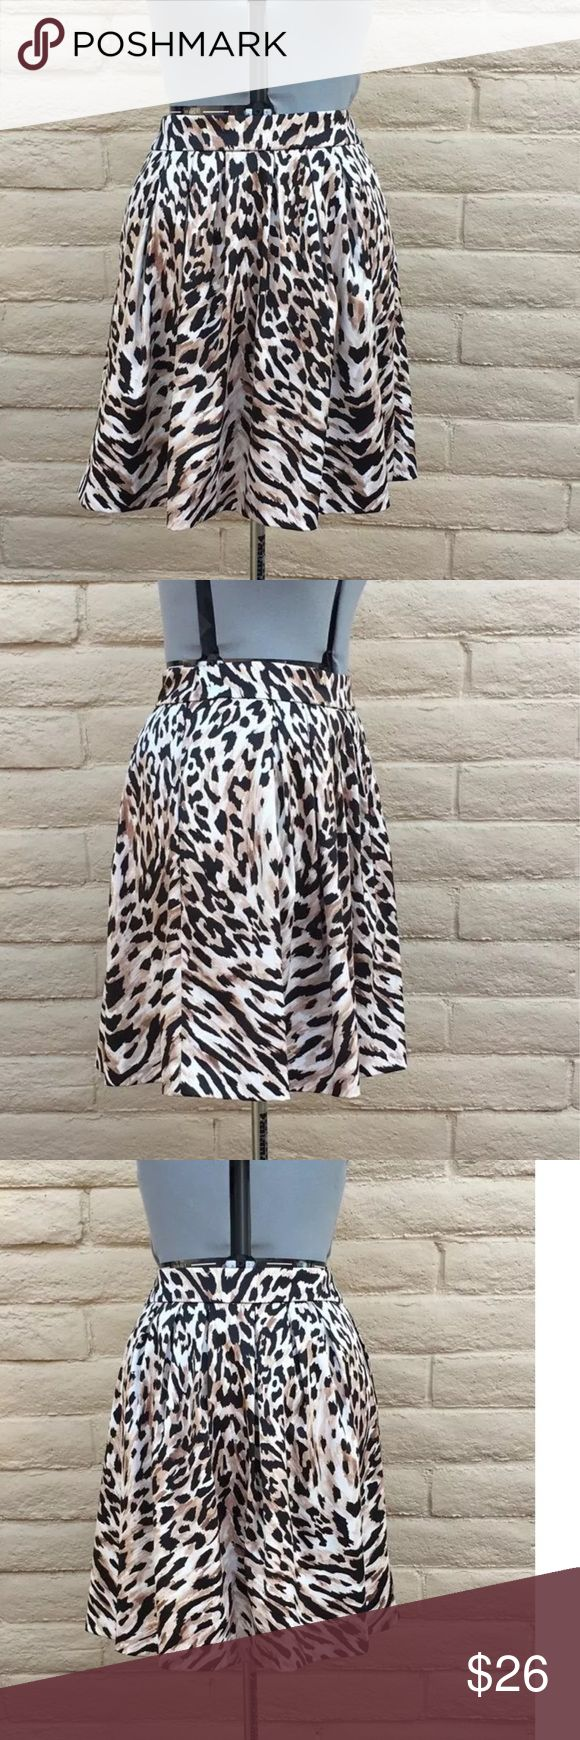 White House black market cheetah skirt SZ 8 Gorgeous skirt. Like new.  No stains or tears. Side zipper, and pockets.  Polyester spandex blend. Has weight to it. Fully lined. Great for career or evening out with a dressy top. 15.25 across waist 21 inch long White House Black Market Skirts Midi